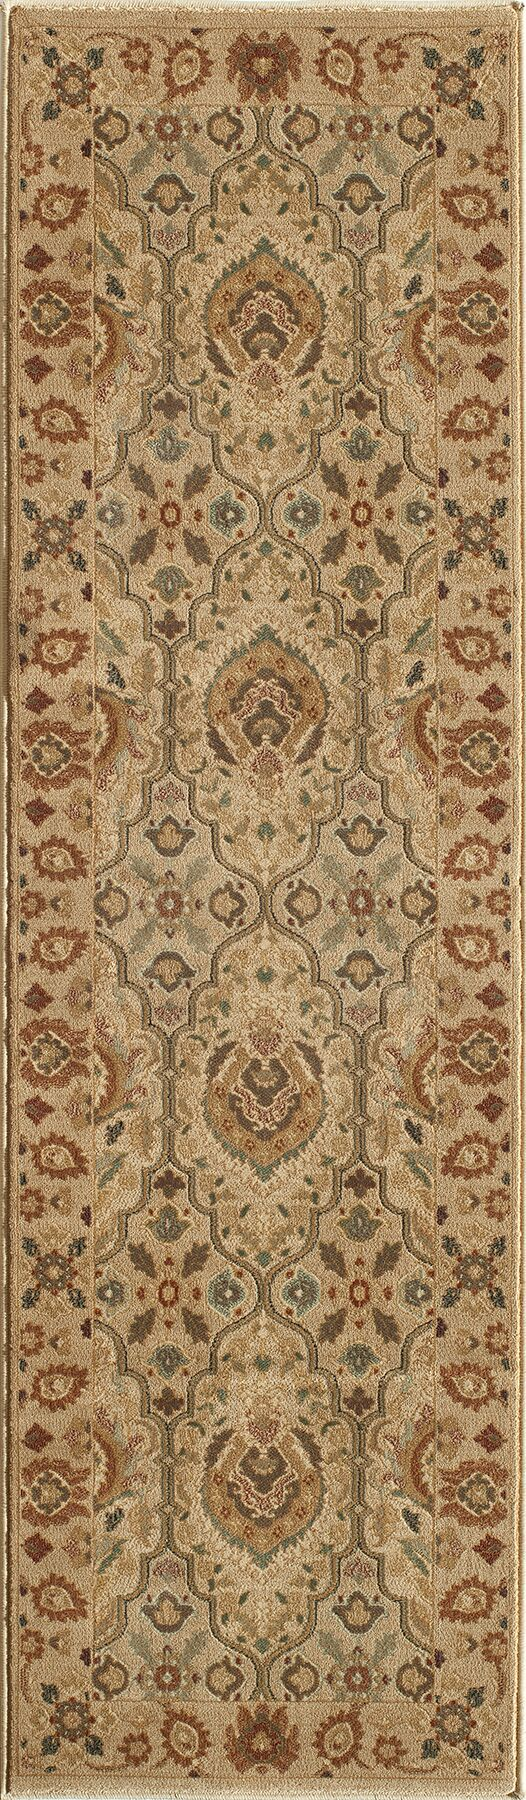 Crescent Ivory Area Rug Rug Size: Rectangle 7'10